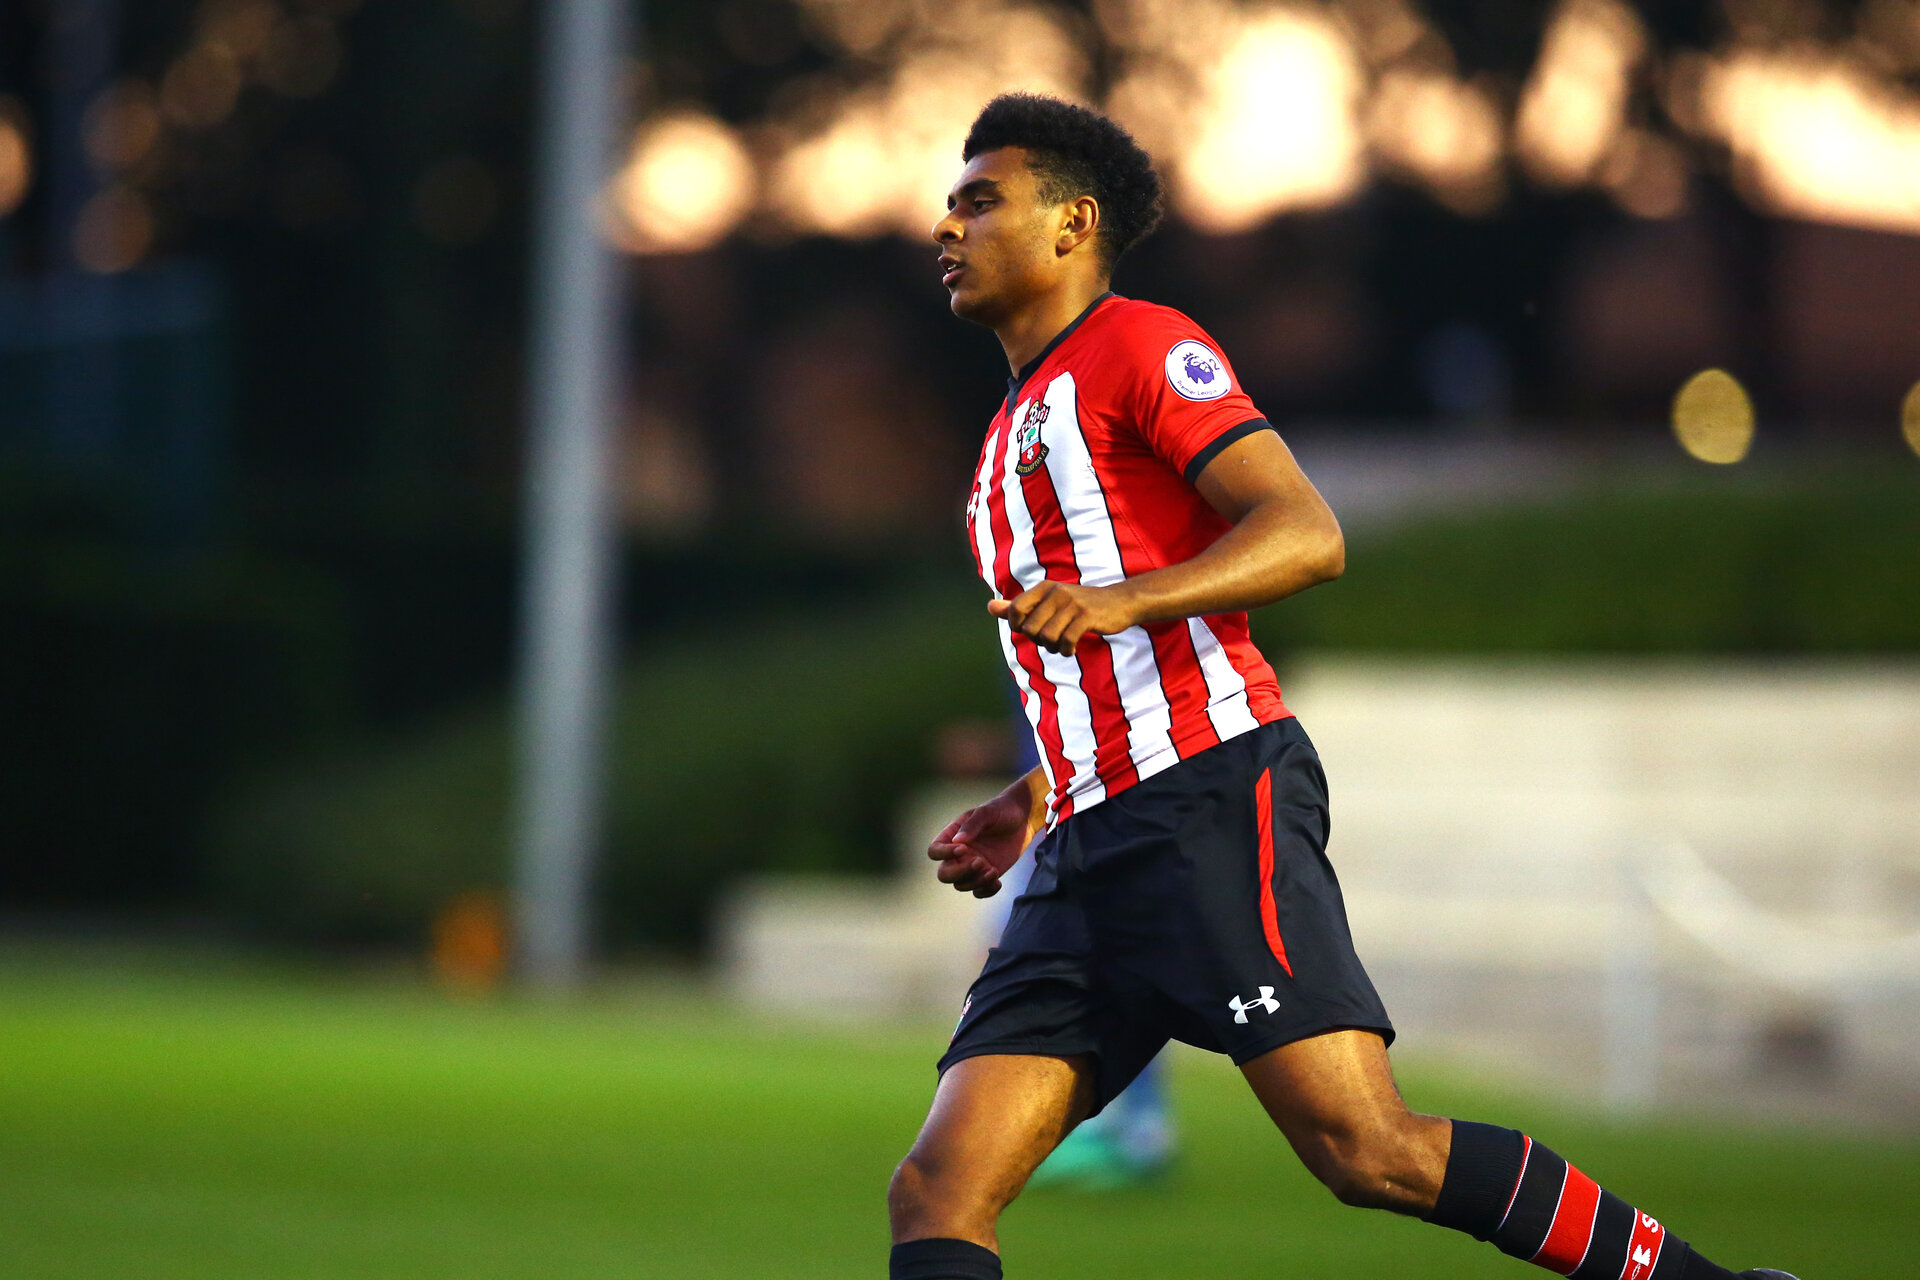 SOUTHAMPTON, ENGLAND - SEPTEMBER 26: Marcus Barnes during the International Cup where Southampton FC play FC Porto pictured at Southampton training session at Staplewood Complex on September 26, 2018 in Southampton, England. (Photo by James Bridle - Southampton FC/Southampton FC via Getty Images)